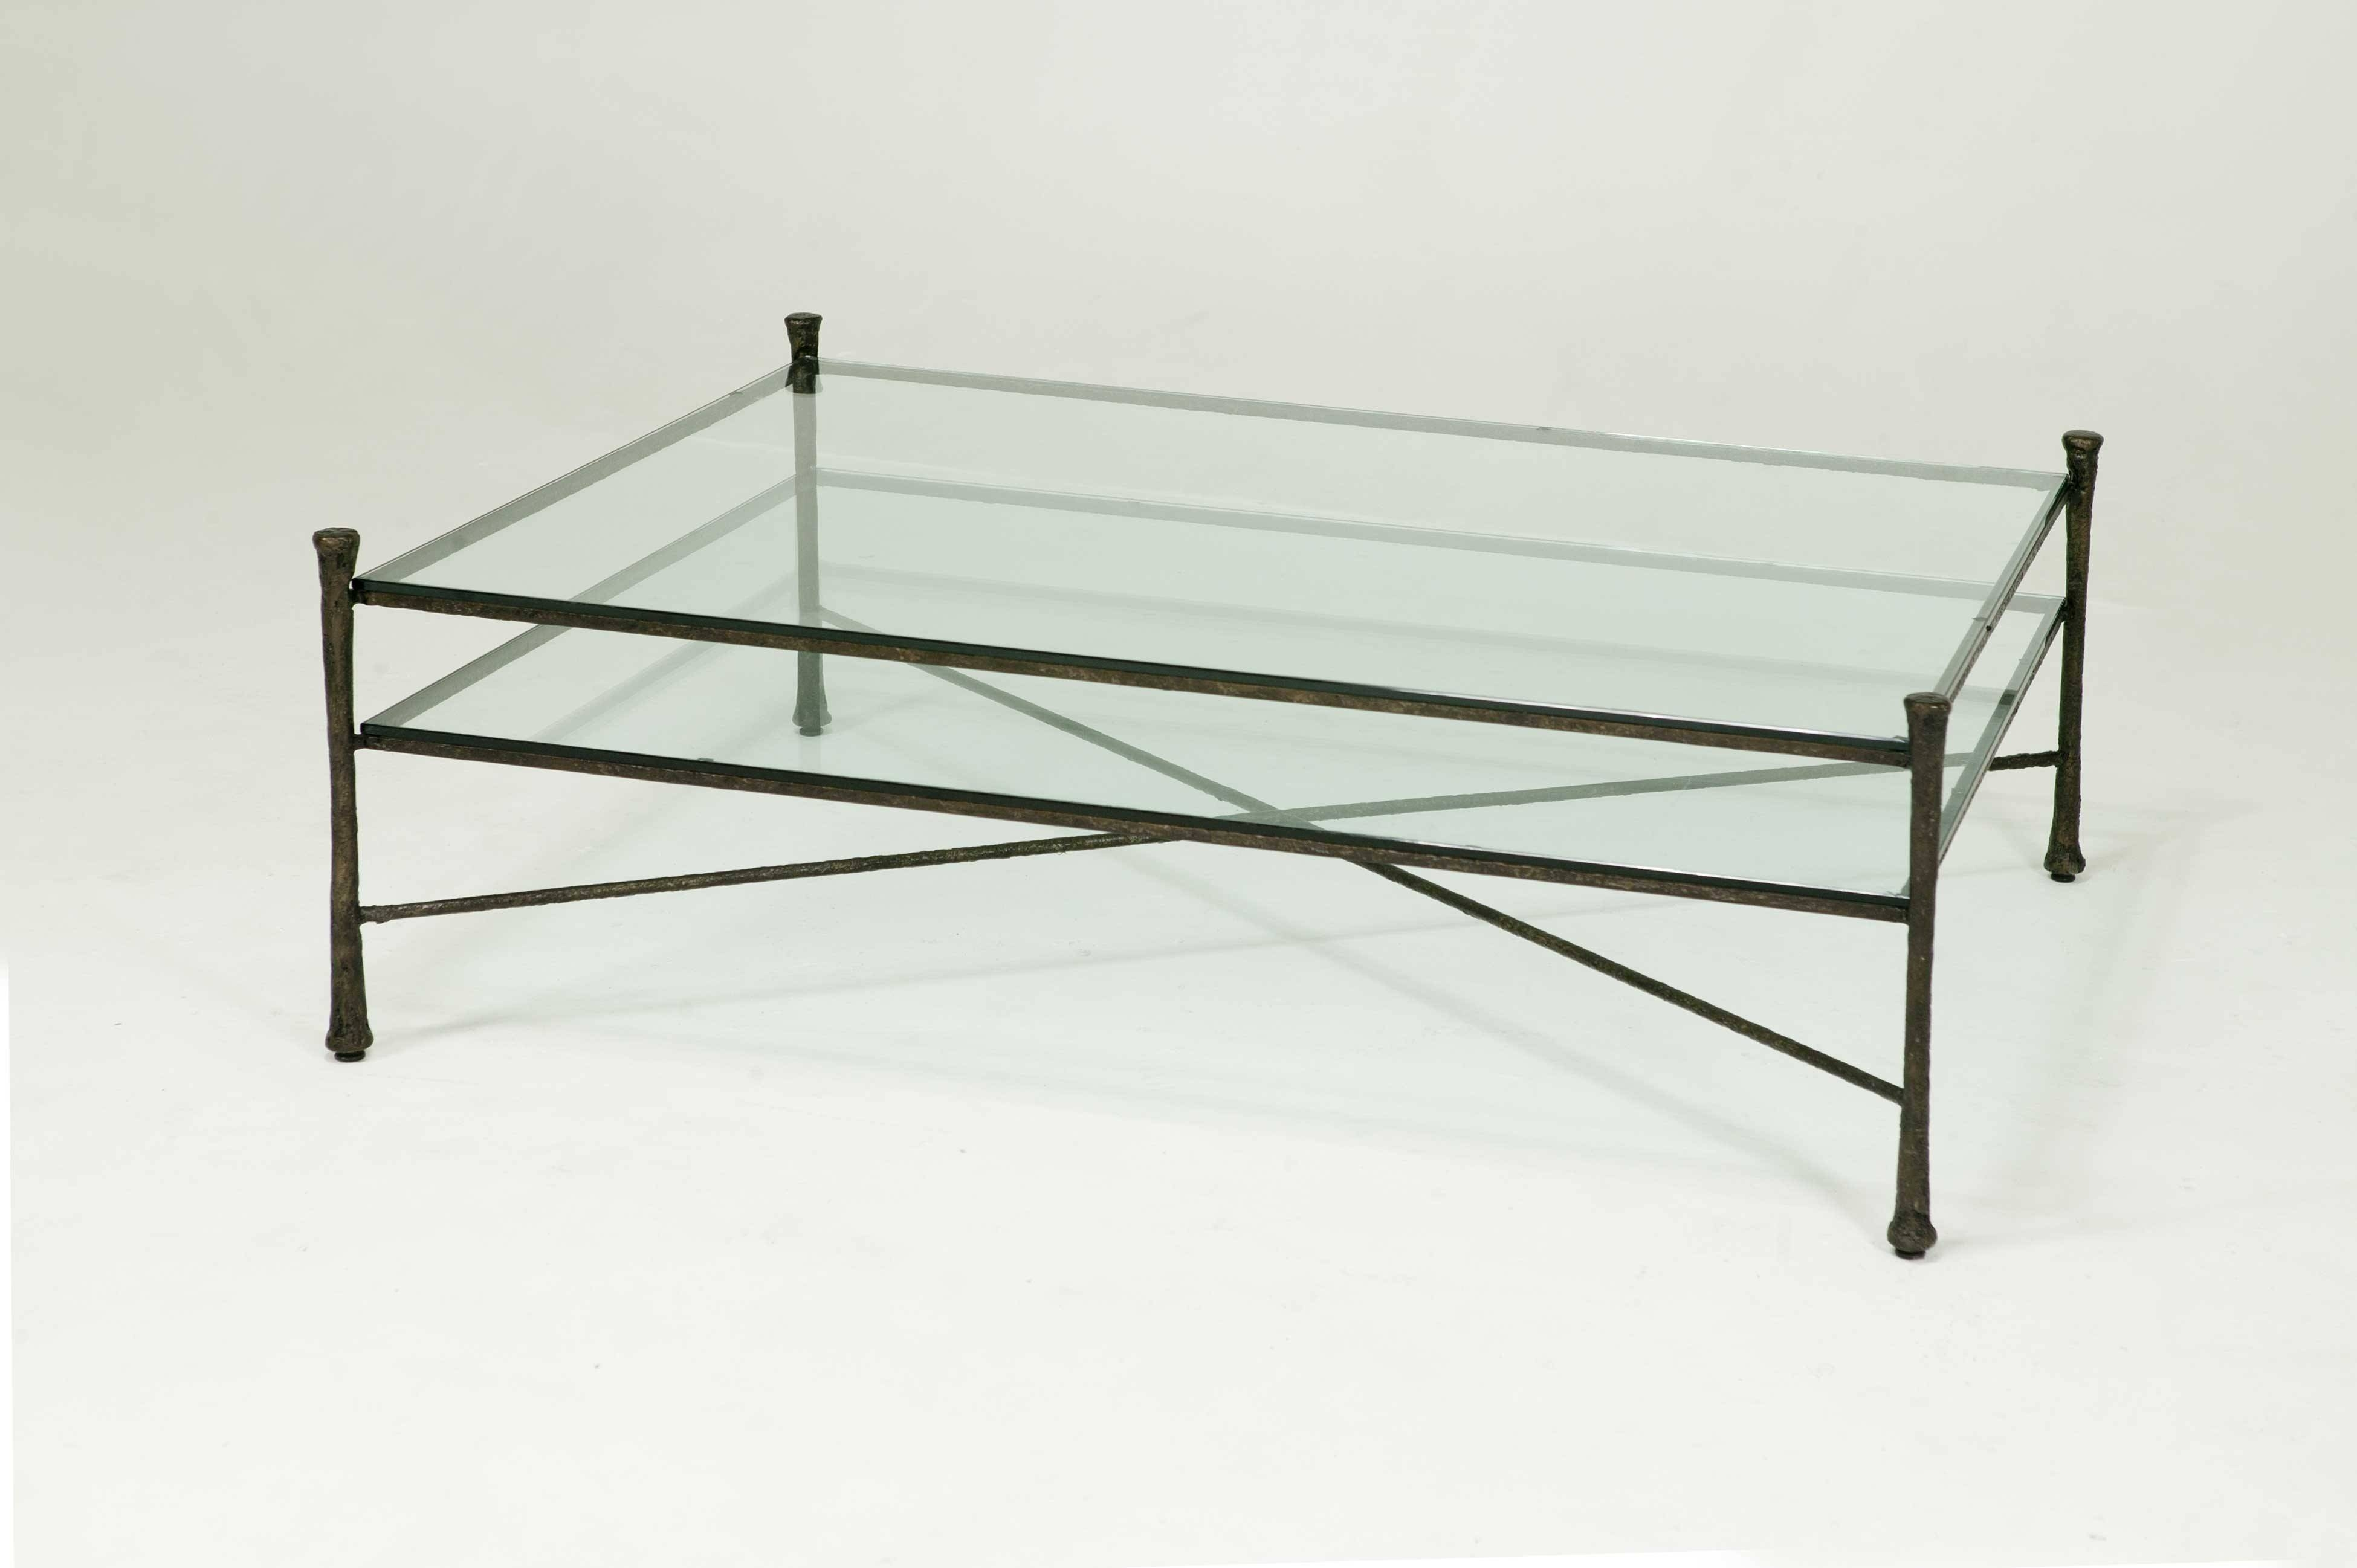 Coffee Table: Best Iron And Glass Coffee Table Design Ideas Square pertaining to Simple Glass Coffee Tables (Image 13 of 30)